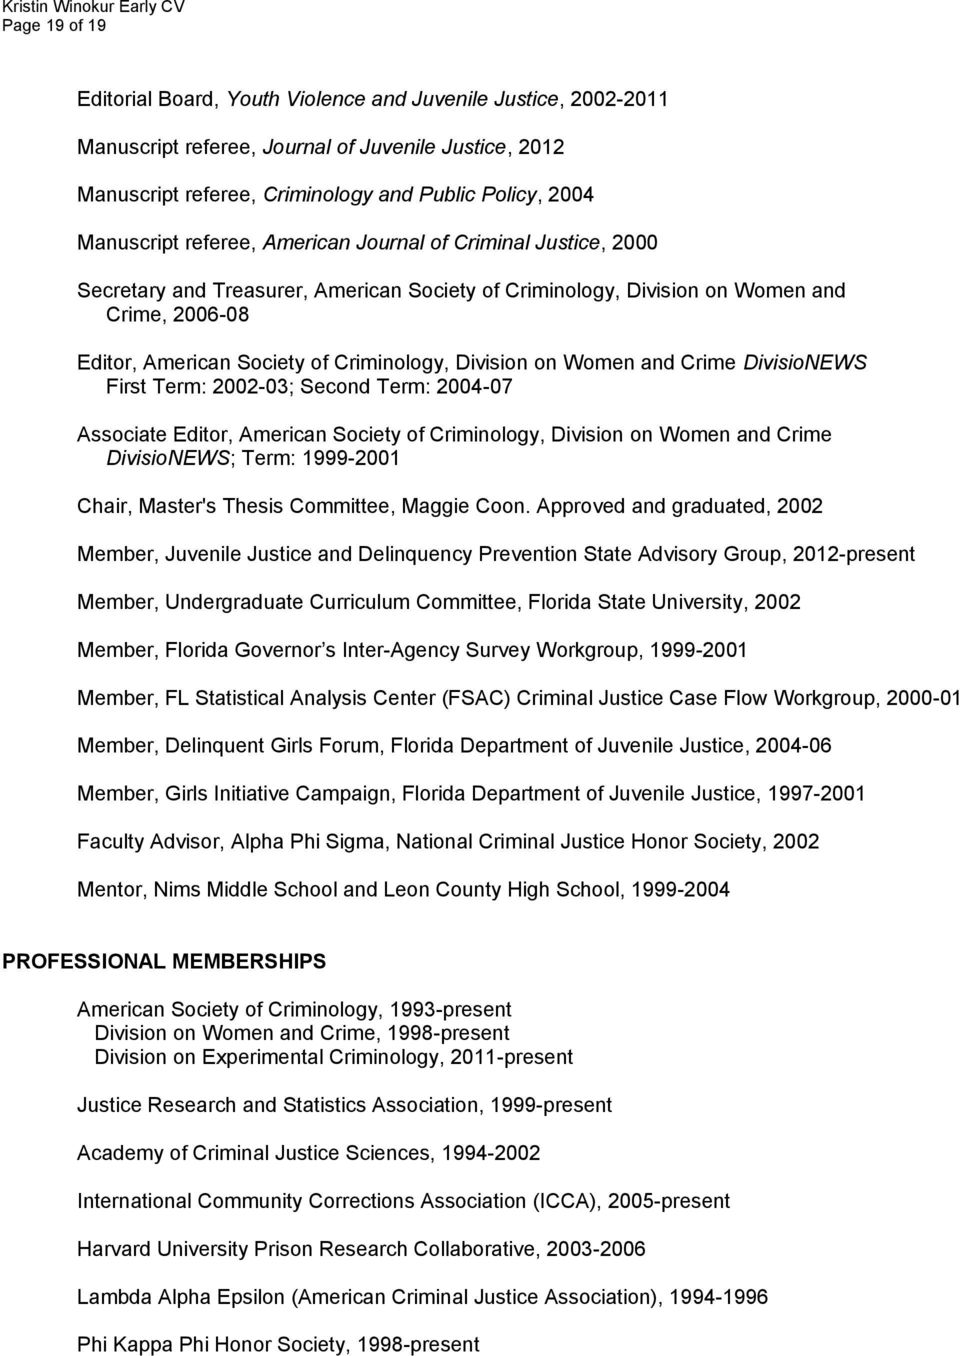 Women and Crime DivisioNEWS First Term: 2002-03; Second Term: 2004-07 Associate Editor, American Society of Criminology, Division on Women and Crime DivisioNEWS; Term: 1999-2001 Chair, Master's